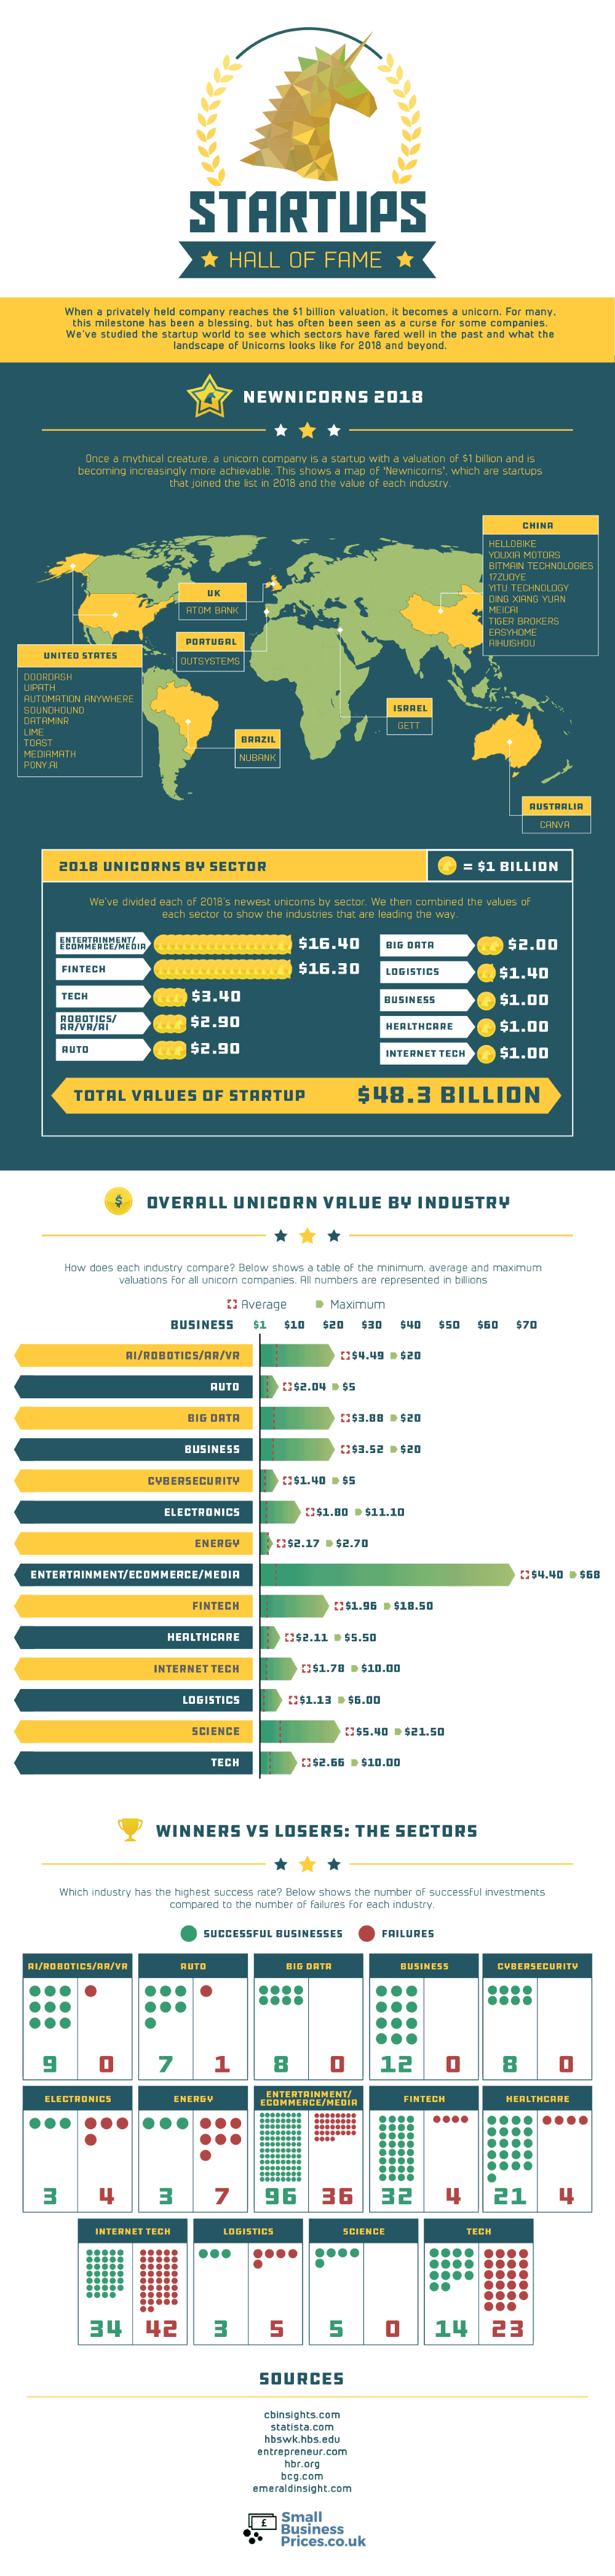 Startup Hall of Fame: Unicorn Winners, Losers & Values By Industry